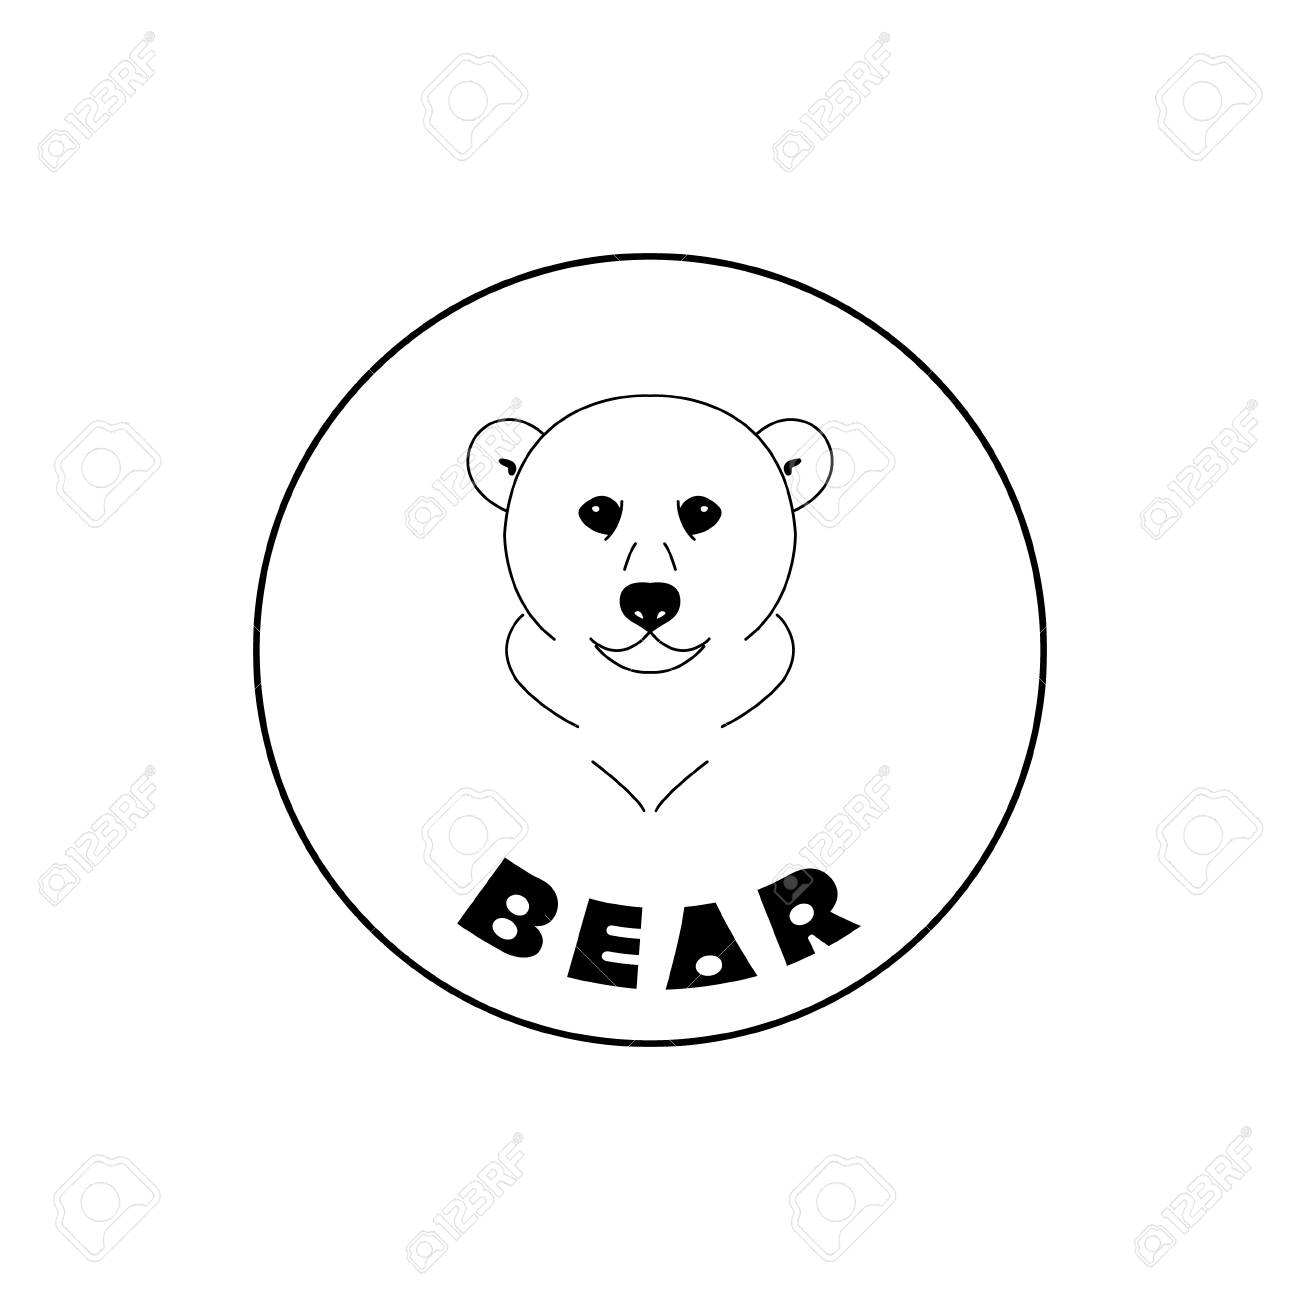 Simple Bear Face Mascot Emblem Symbols Can Be Used For T Shirts Print